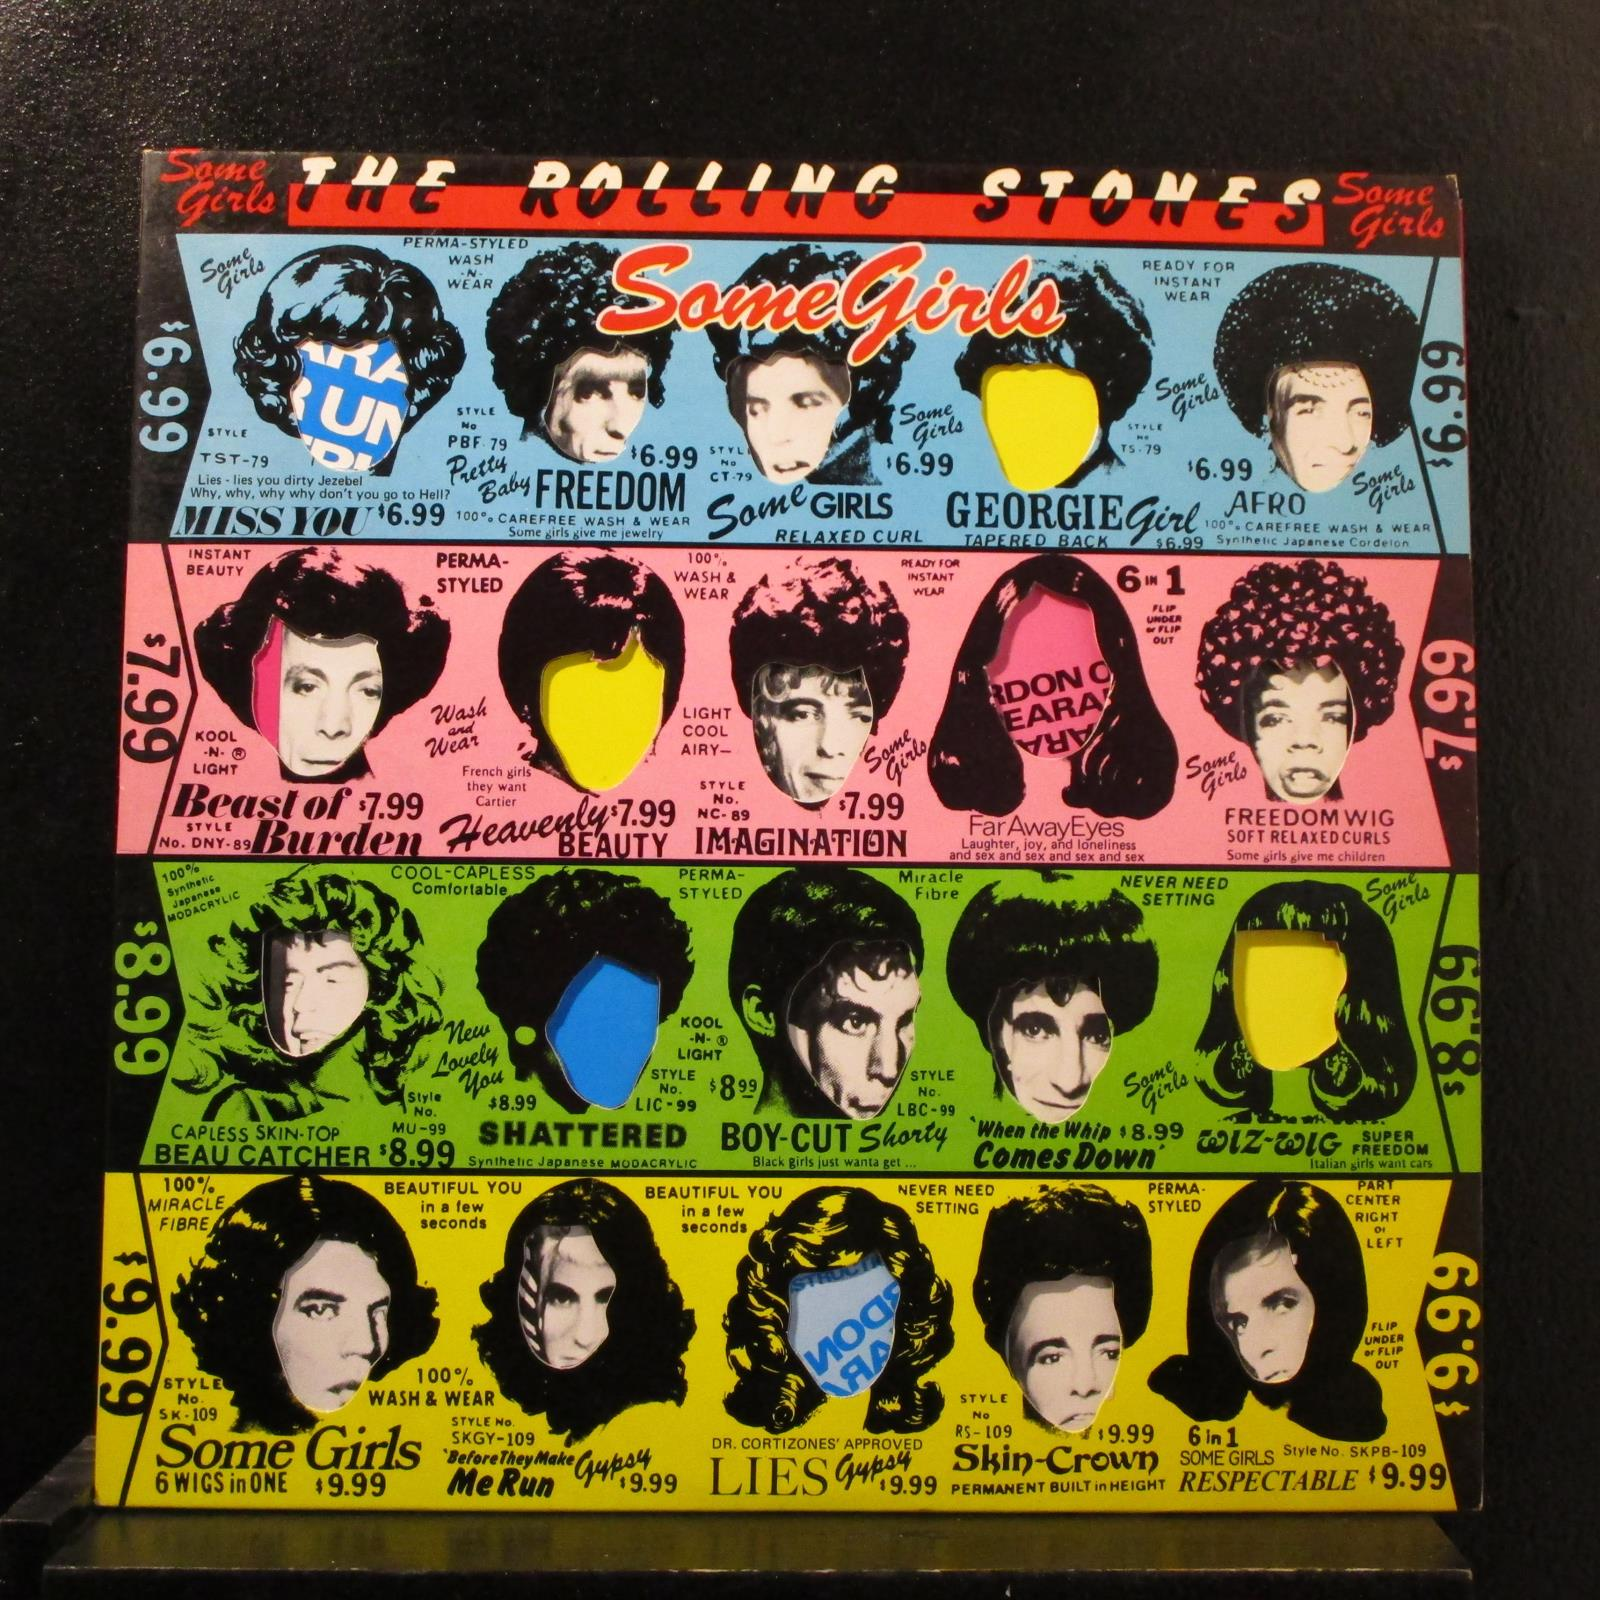 Details about The Rolling Stones - Some Girls LP VG+ COC 39108 USA 1978  Vinyl Record